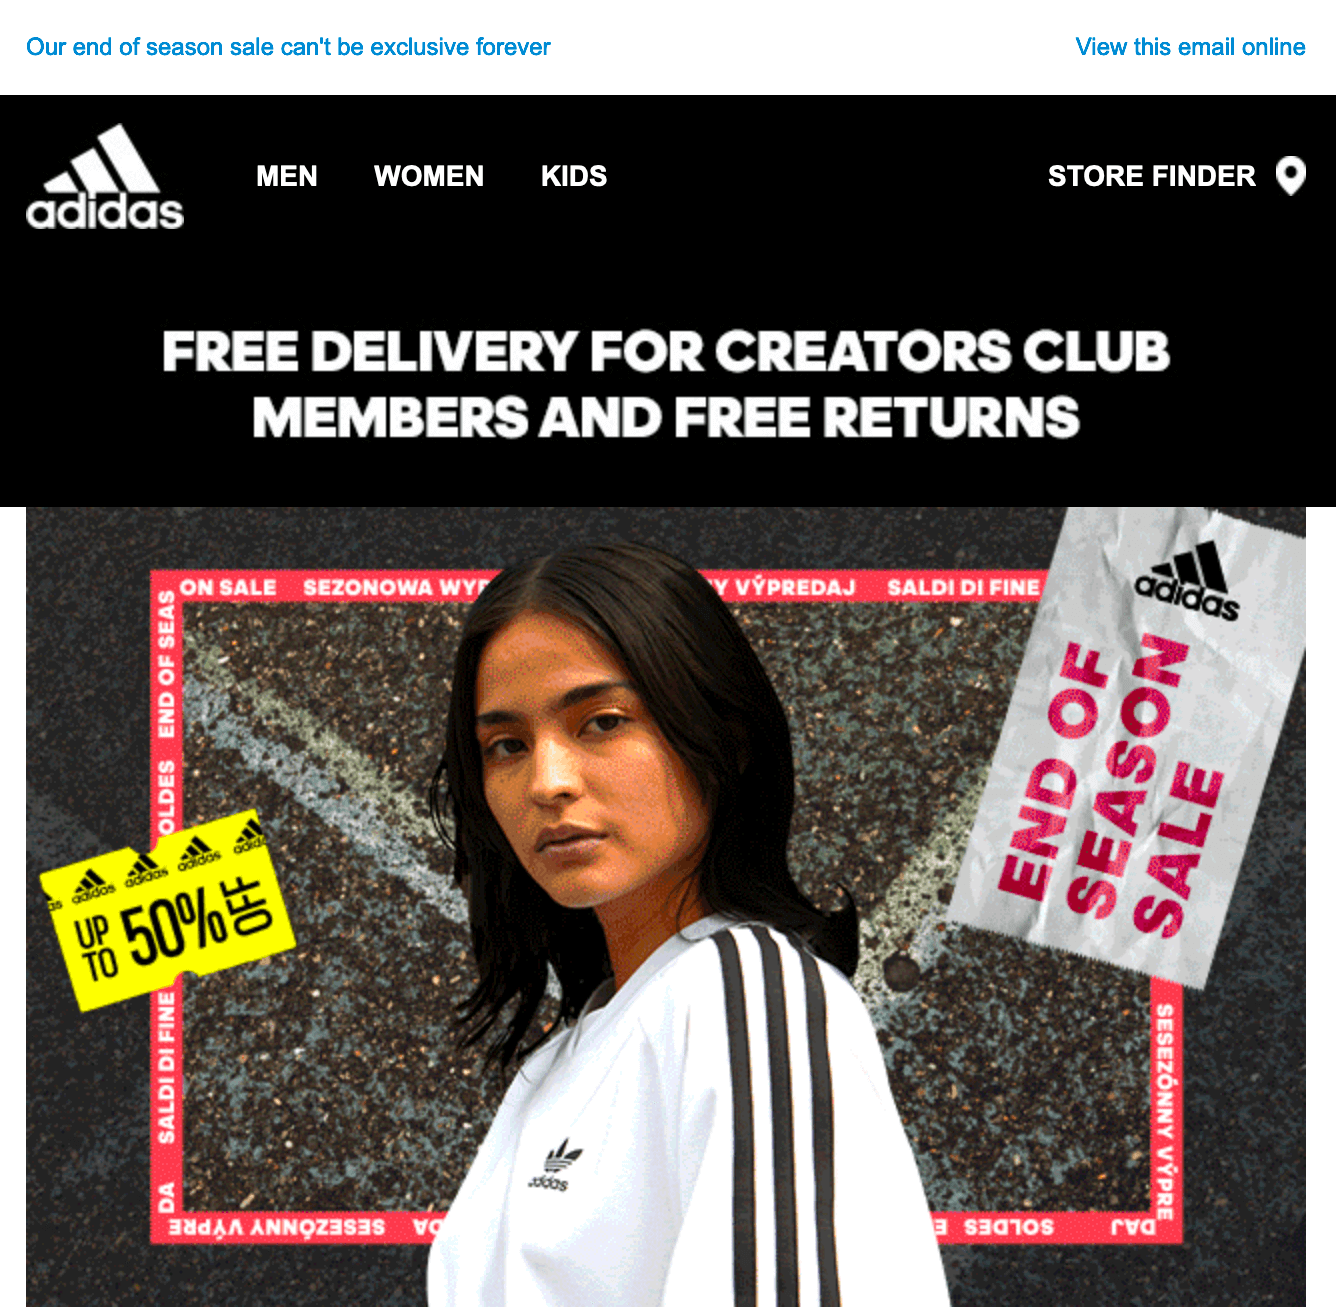 Image of an Adidas email promoting free delivery and returns for their Creators Club members.